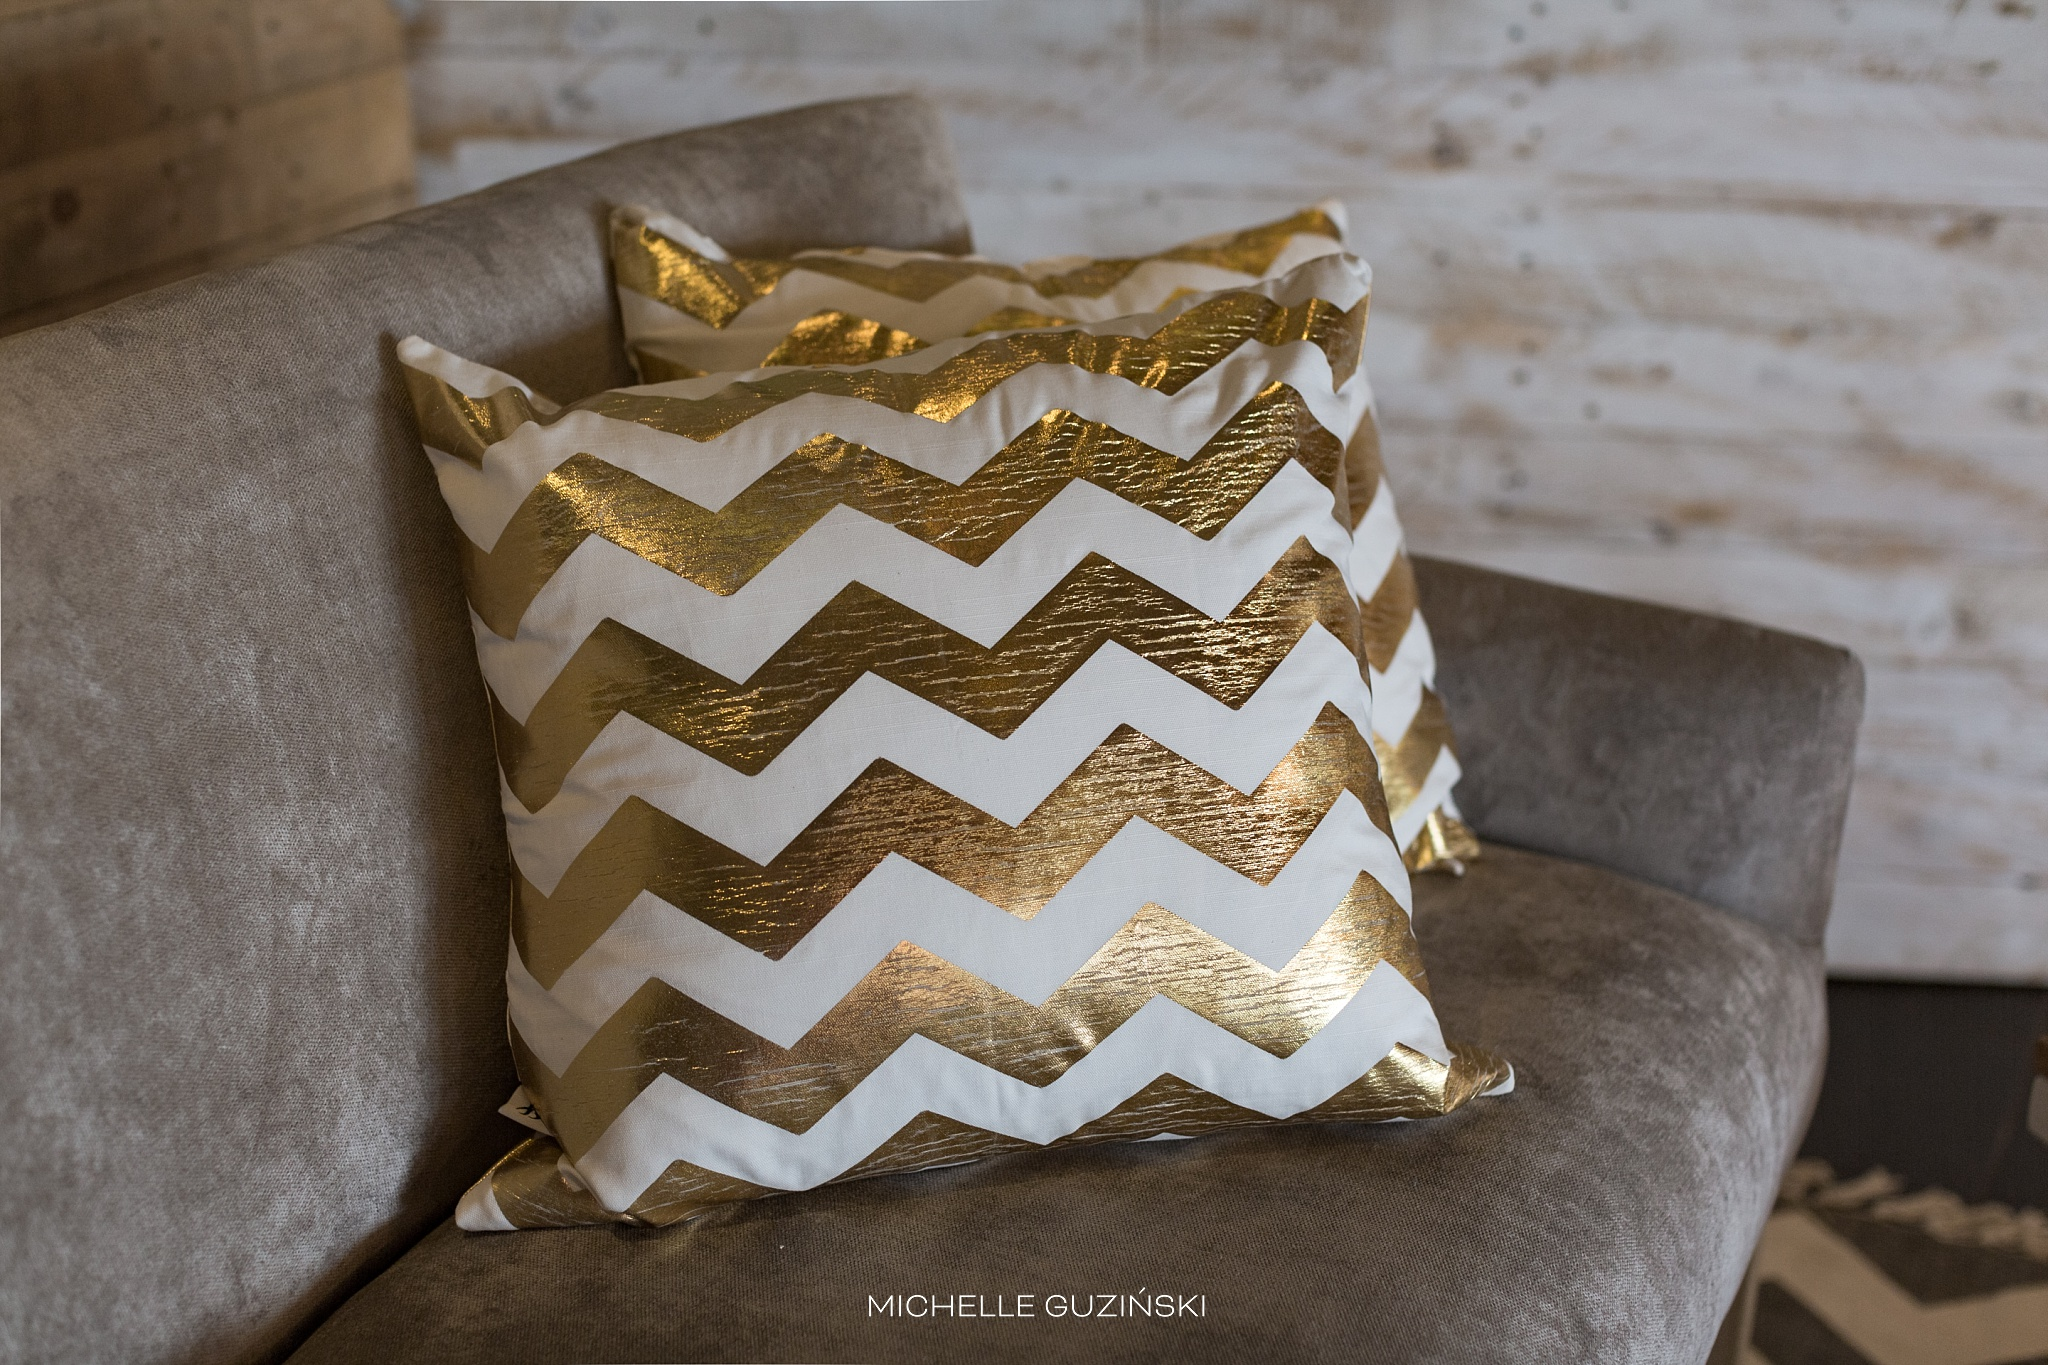 GOLD CHEVRON SCATTERS WAS AN OBVIOUS CHOICE!